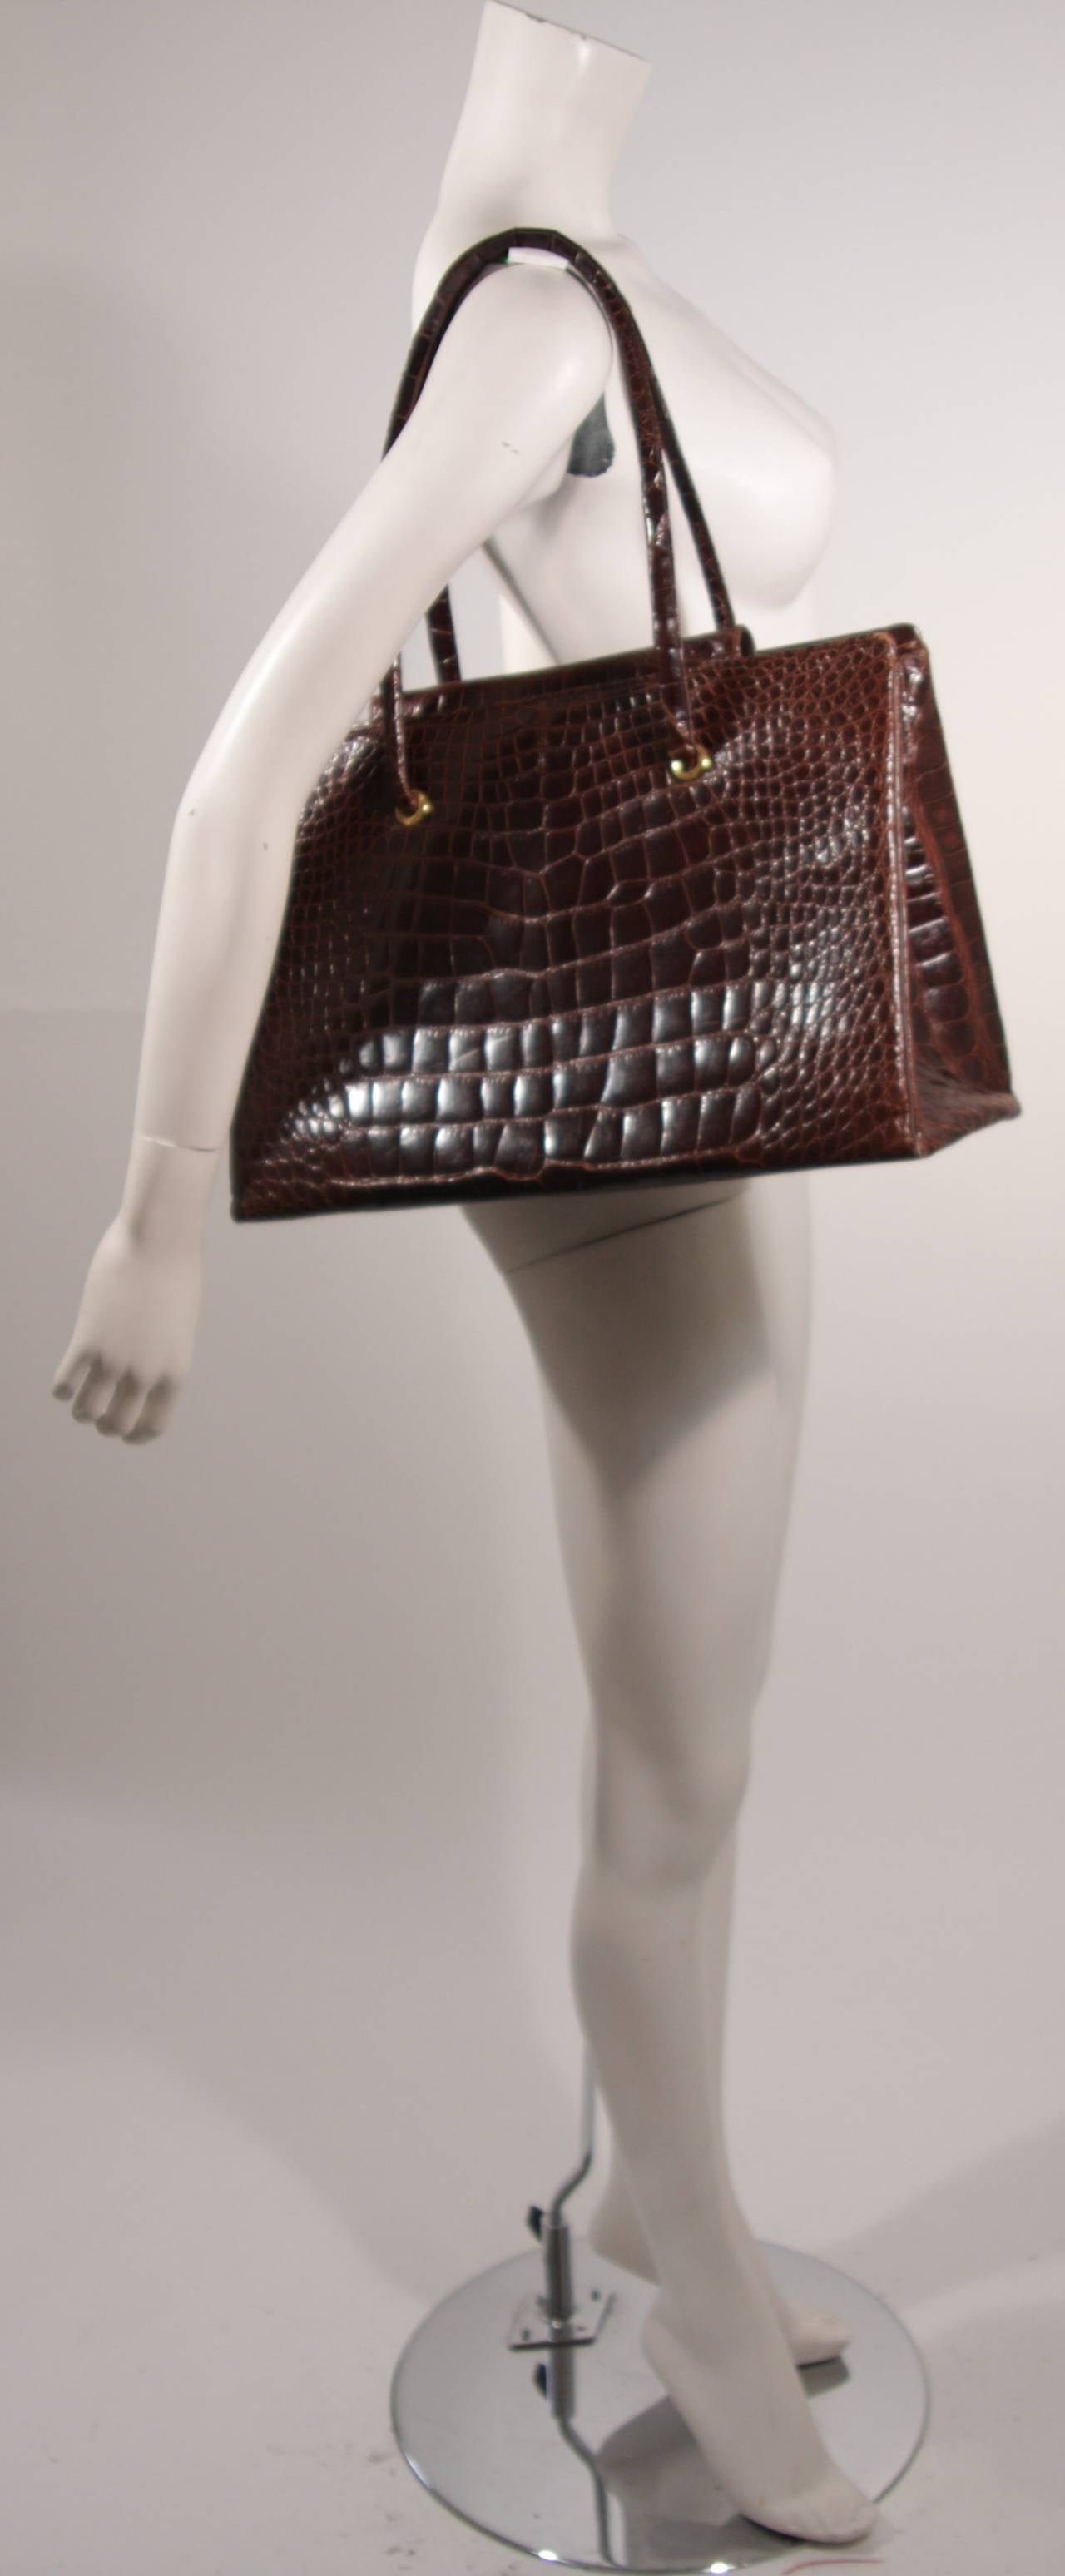 Judith Leiber Extra Large Chocolate Crocodile Shoulder Bag with Snap Top 3